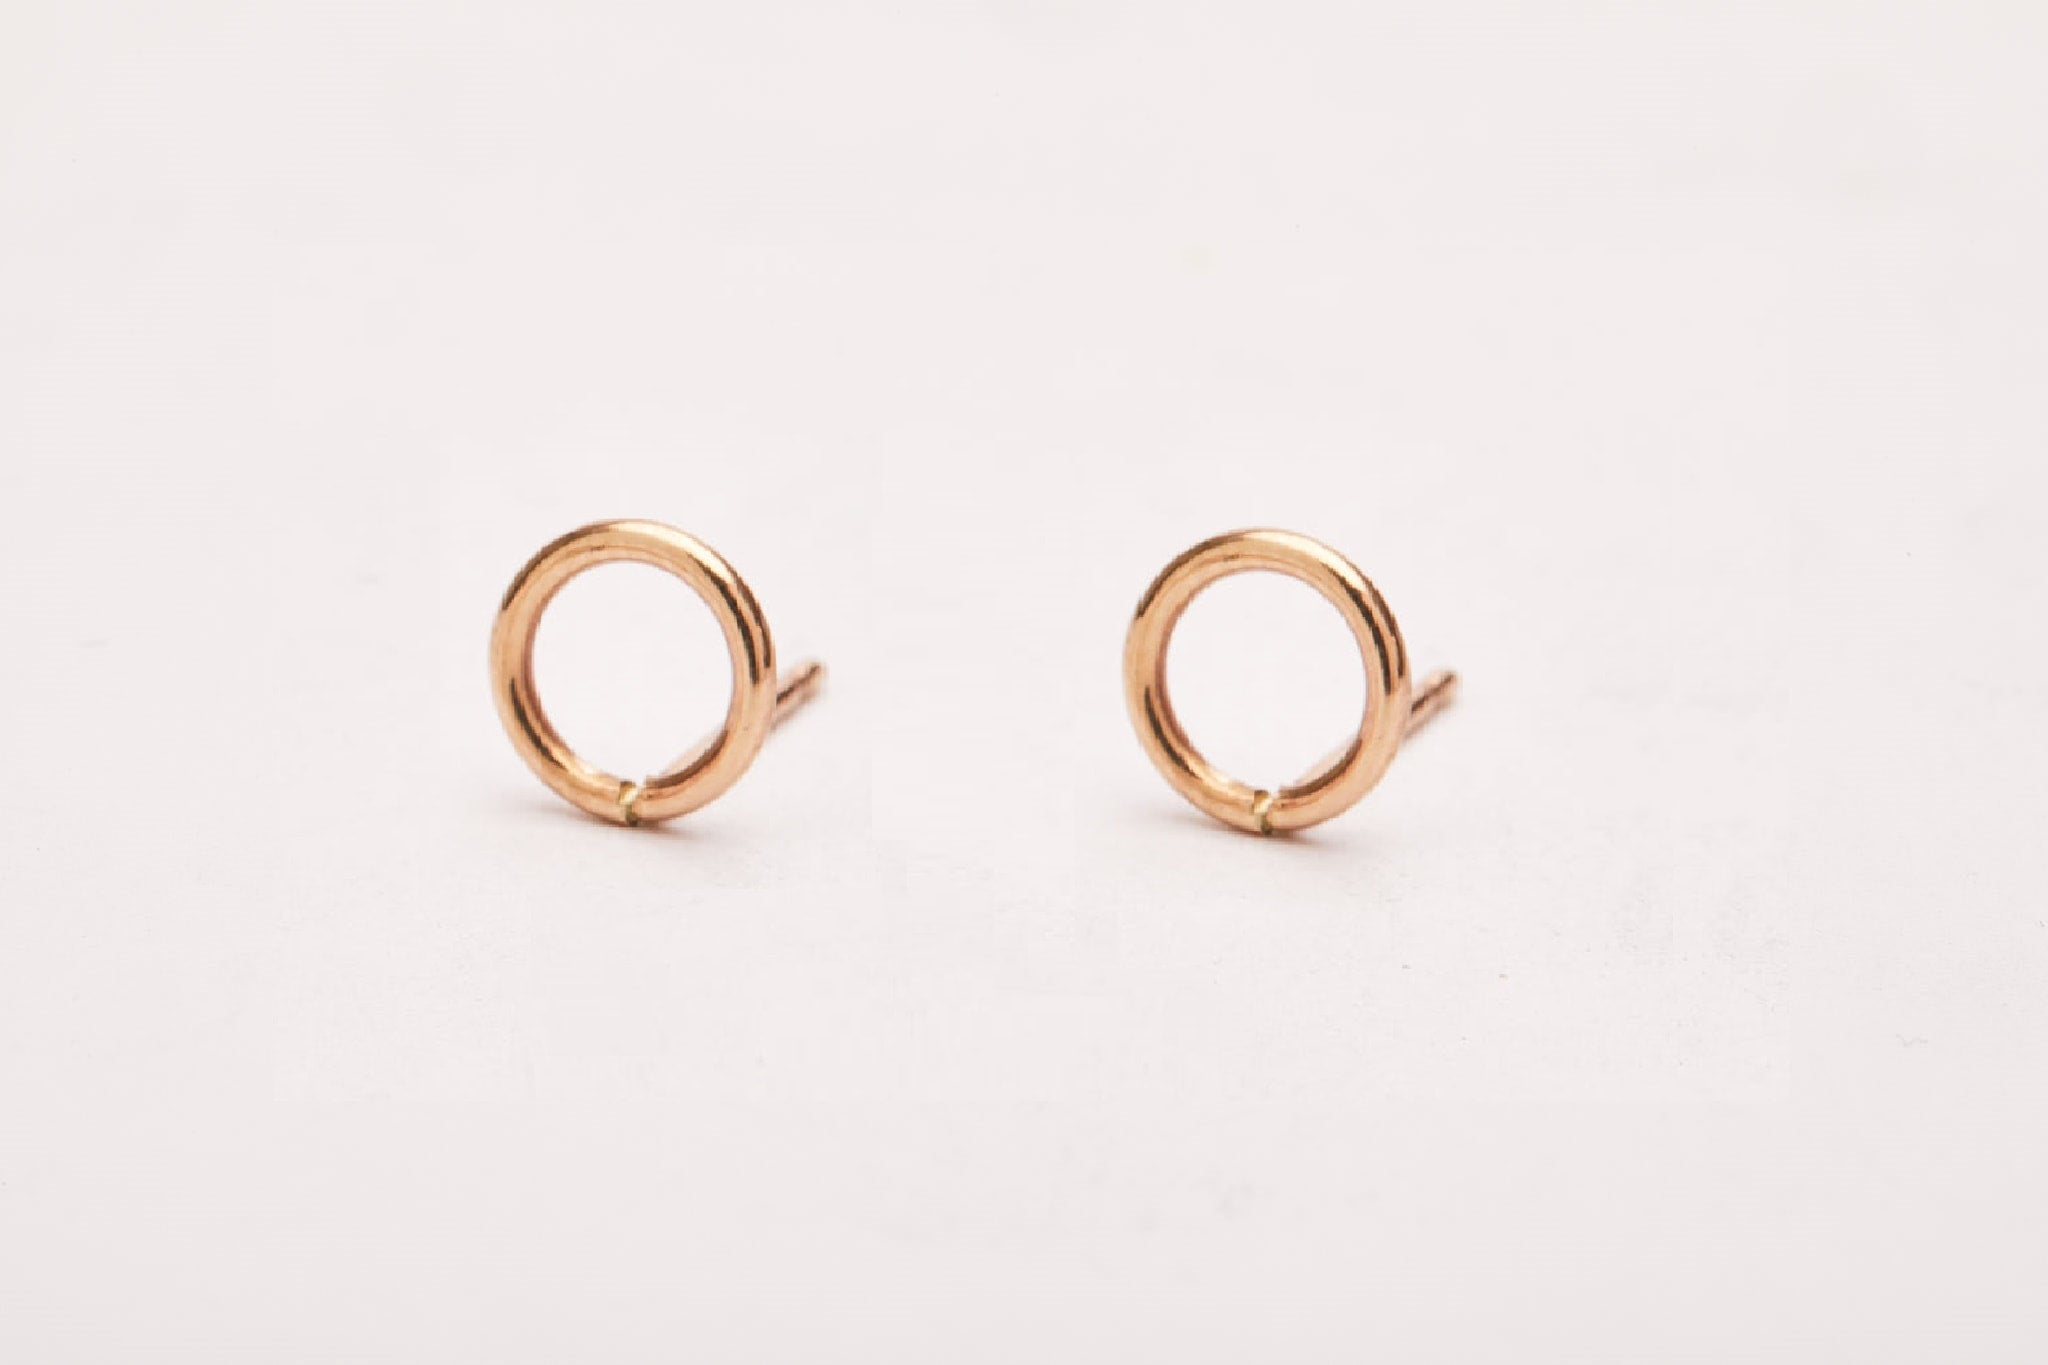 The Circle Stud Earrings